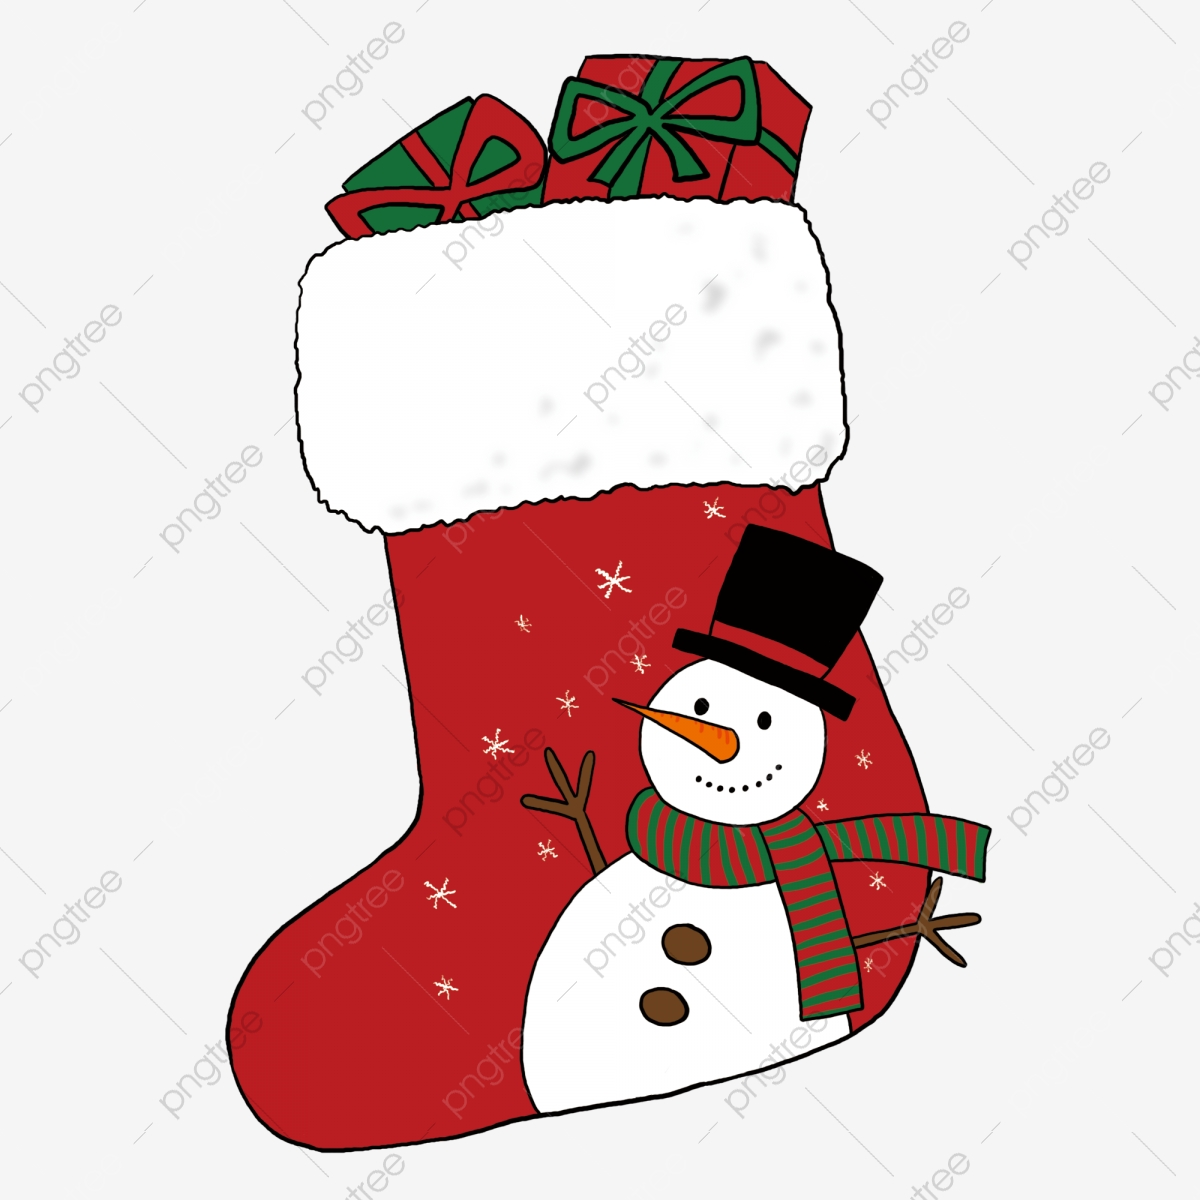 Snowman Christmas Stockings Filled With Gifts, Gift ... (1200 x 1200 Pixel)